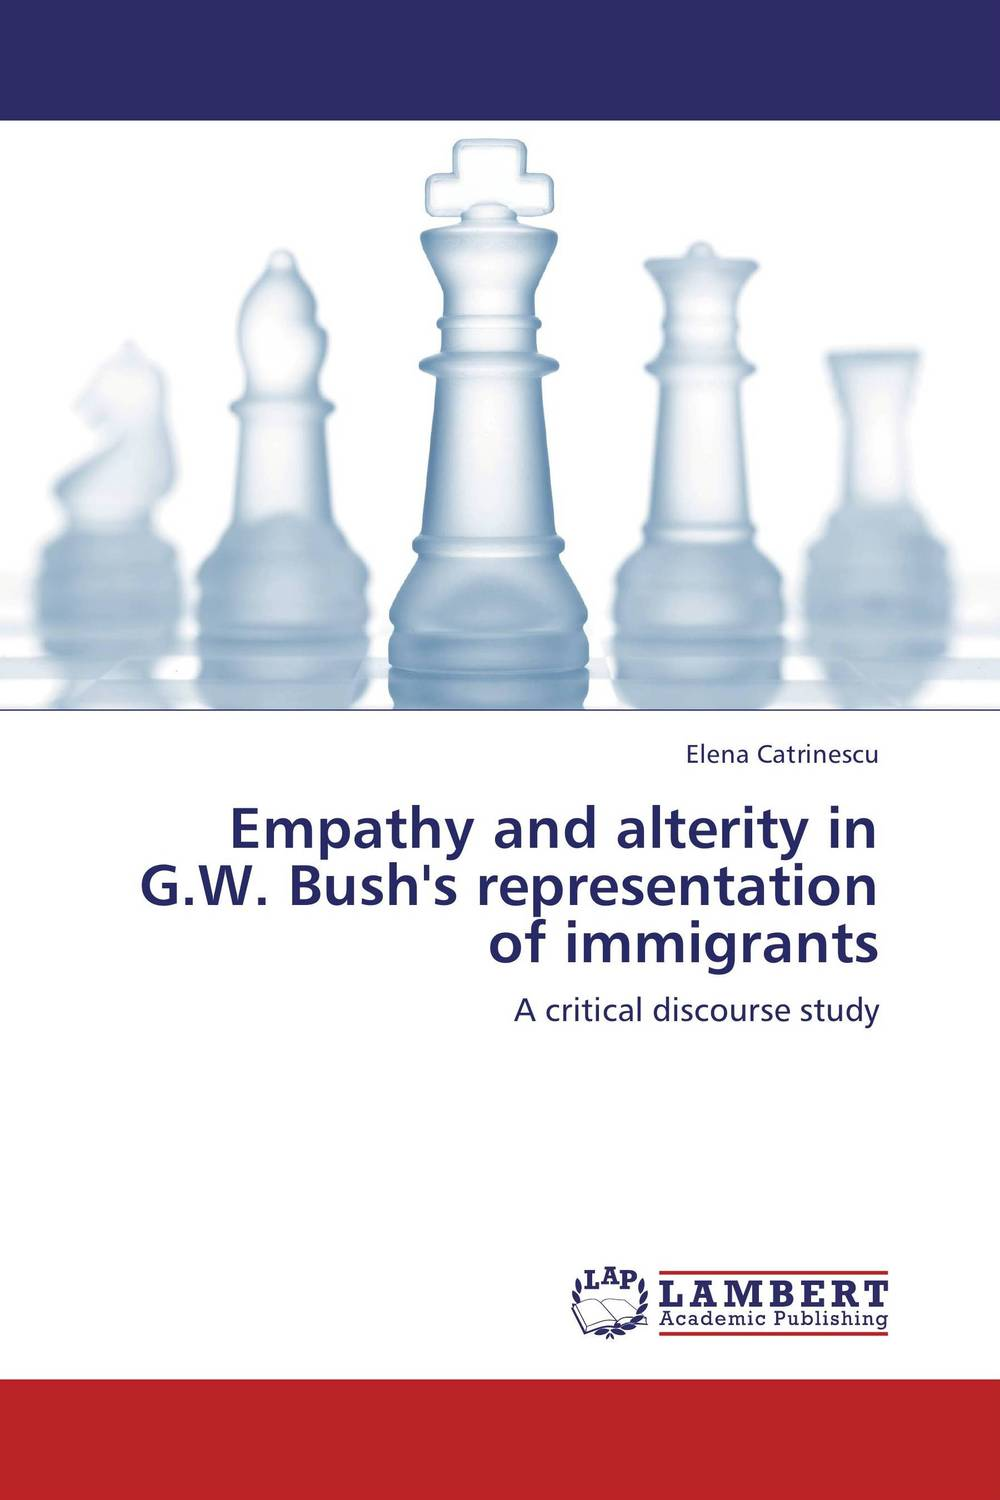 Empathy and alterity in G.W. Bush's representation of immigrants driven to distraction